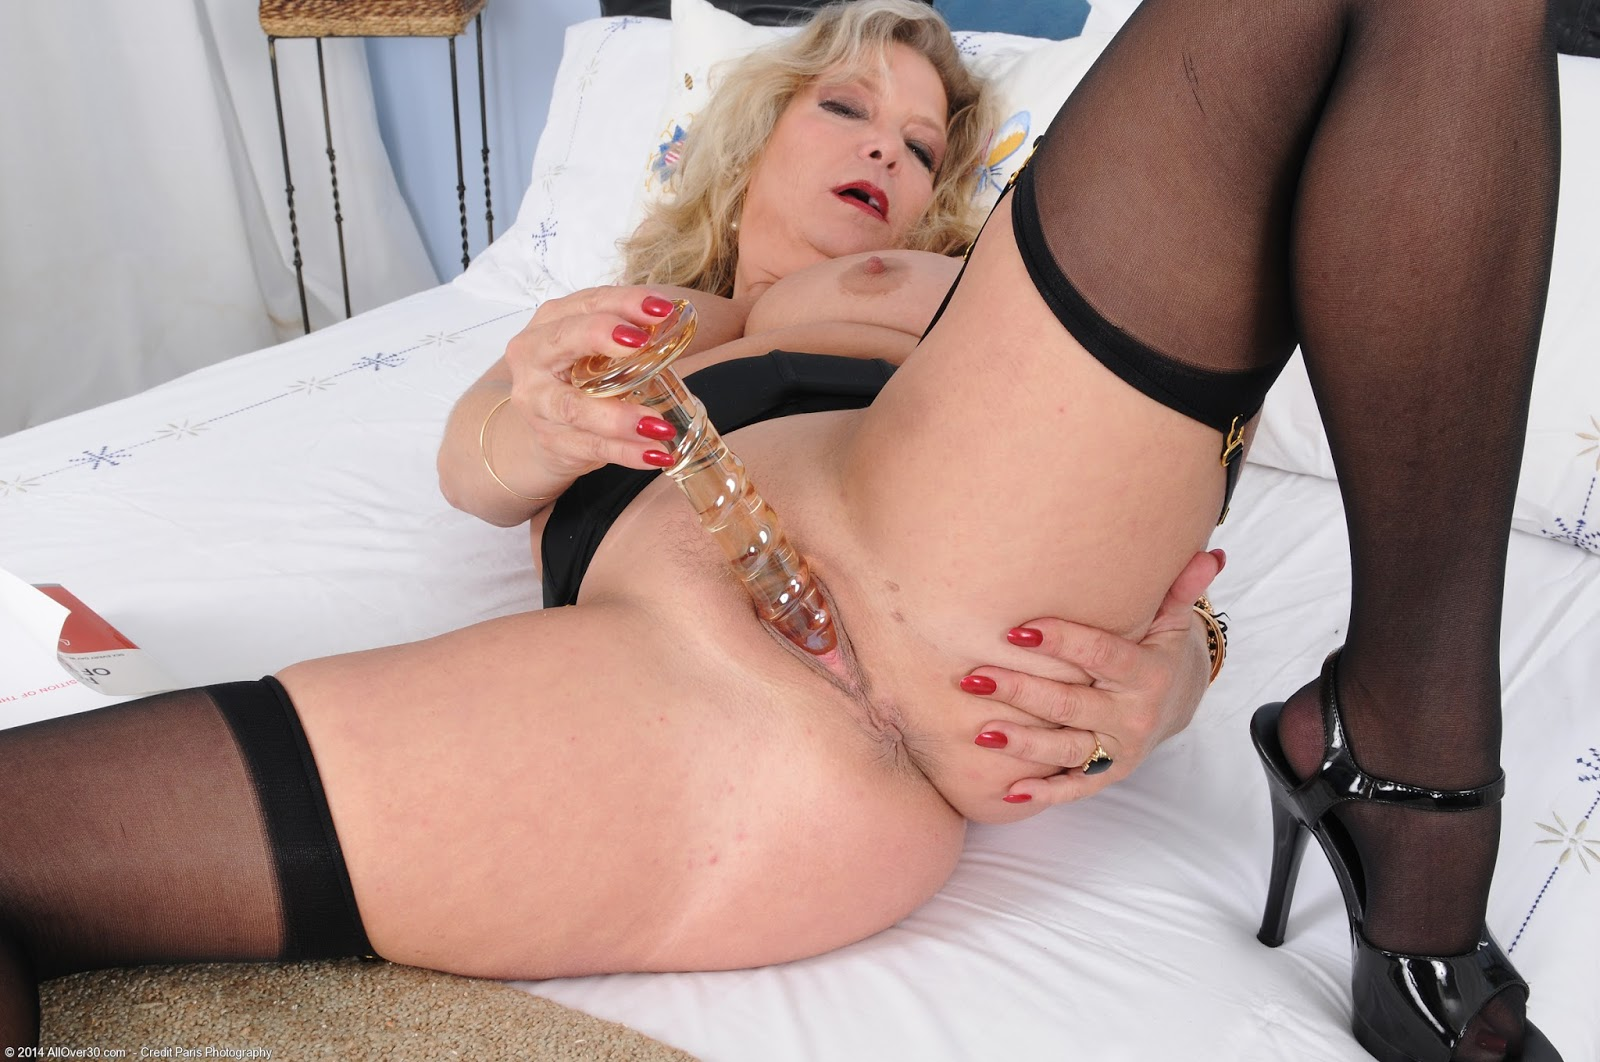 Older English Woman Porn Star 83